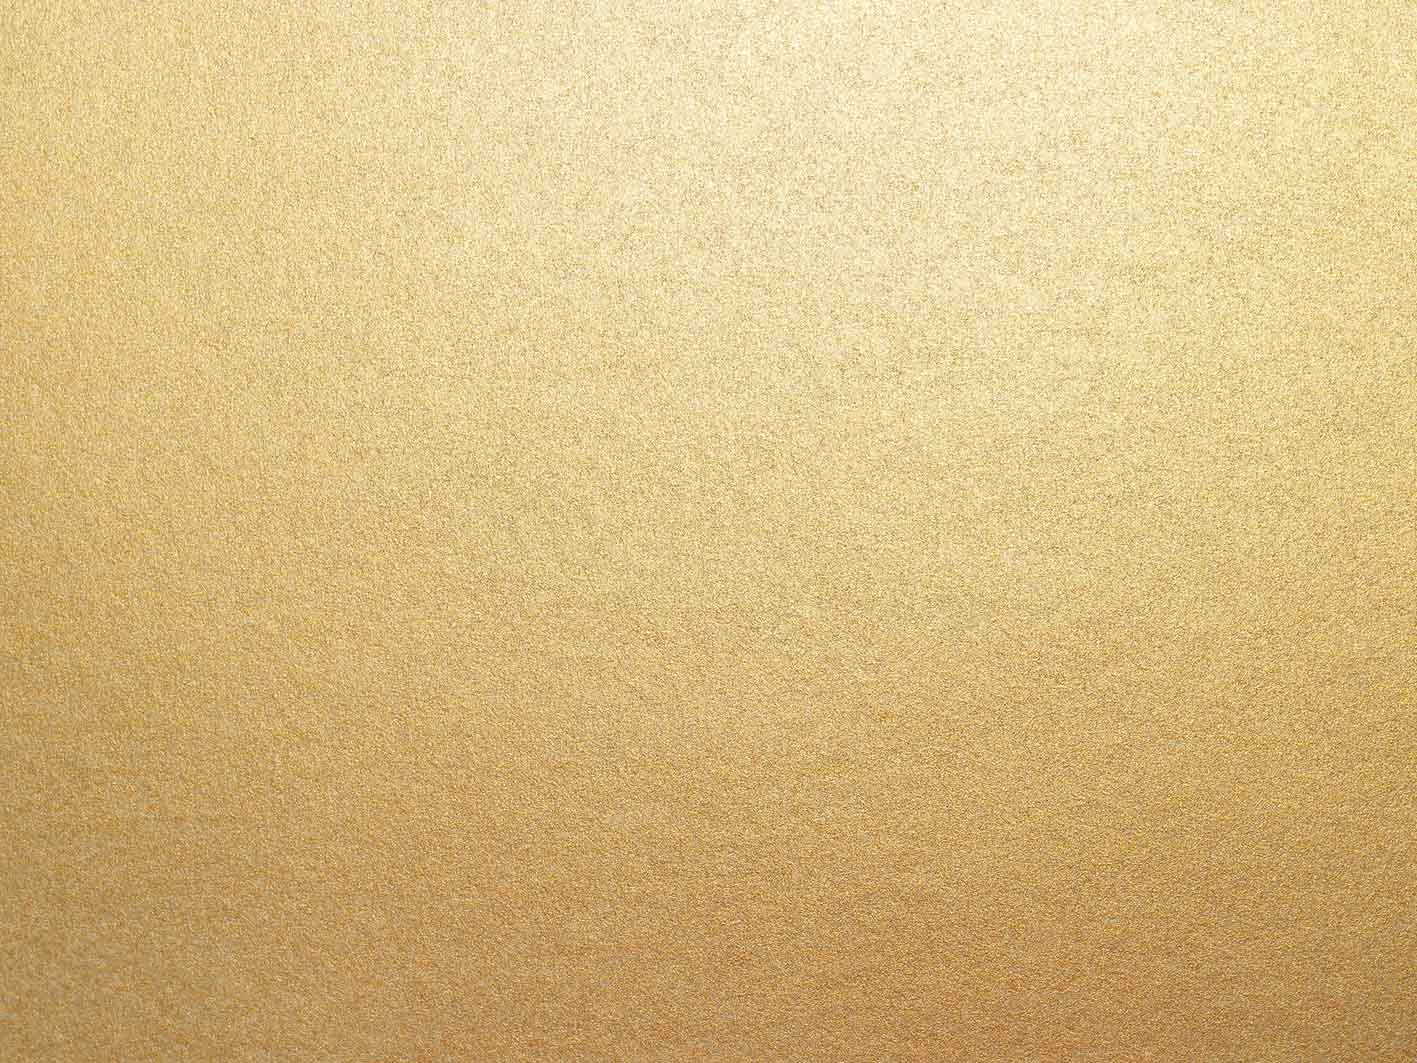 Pearlescent - Gold 120gsm